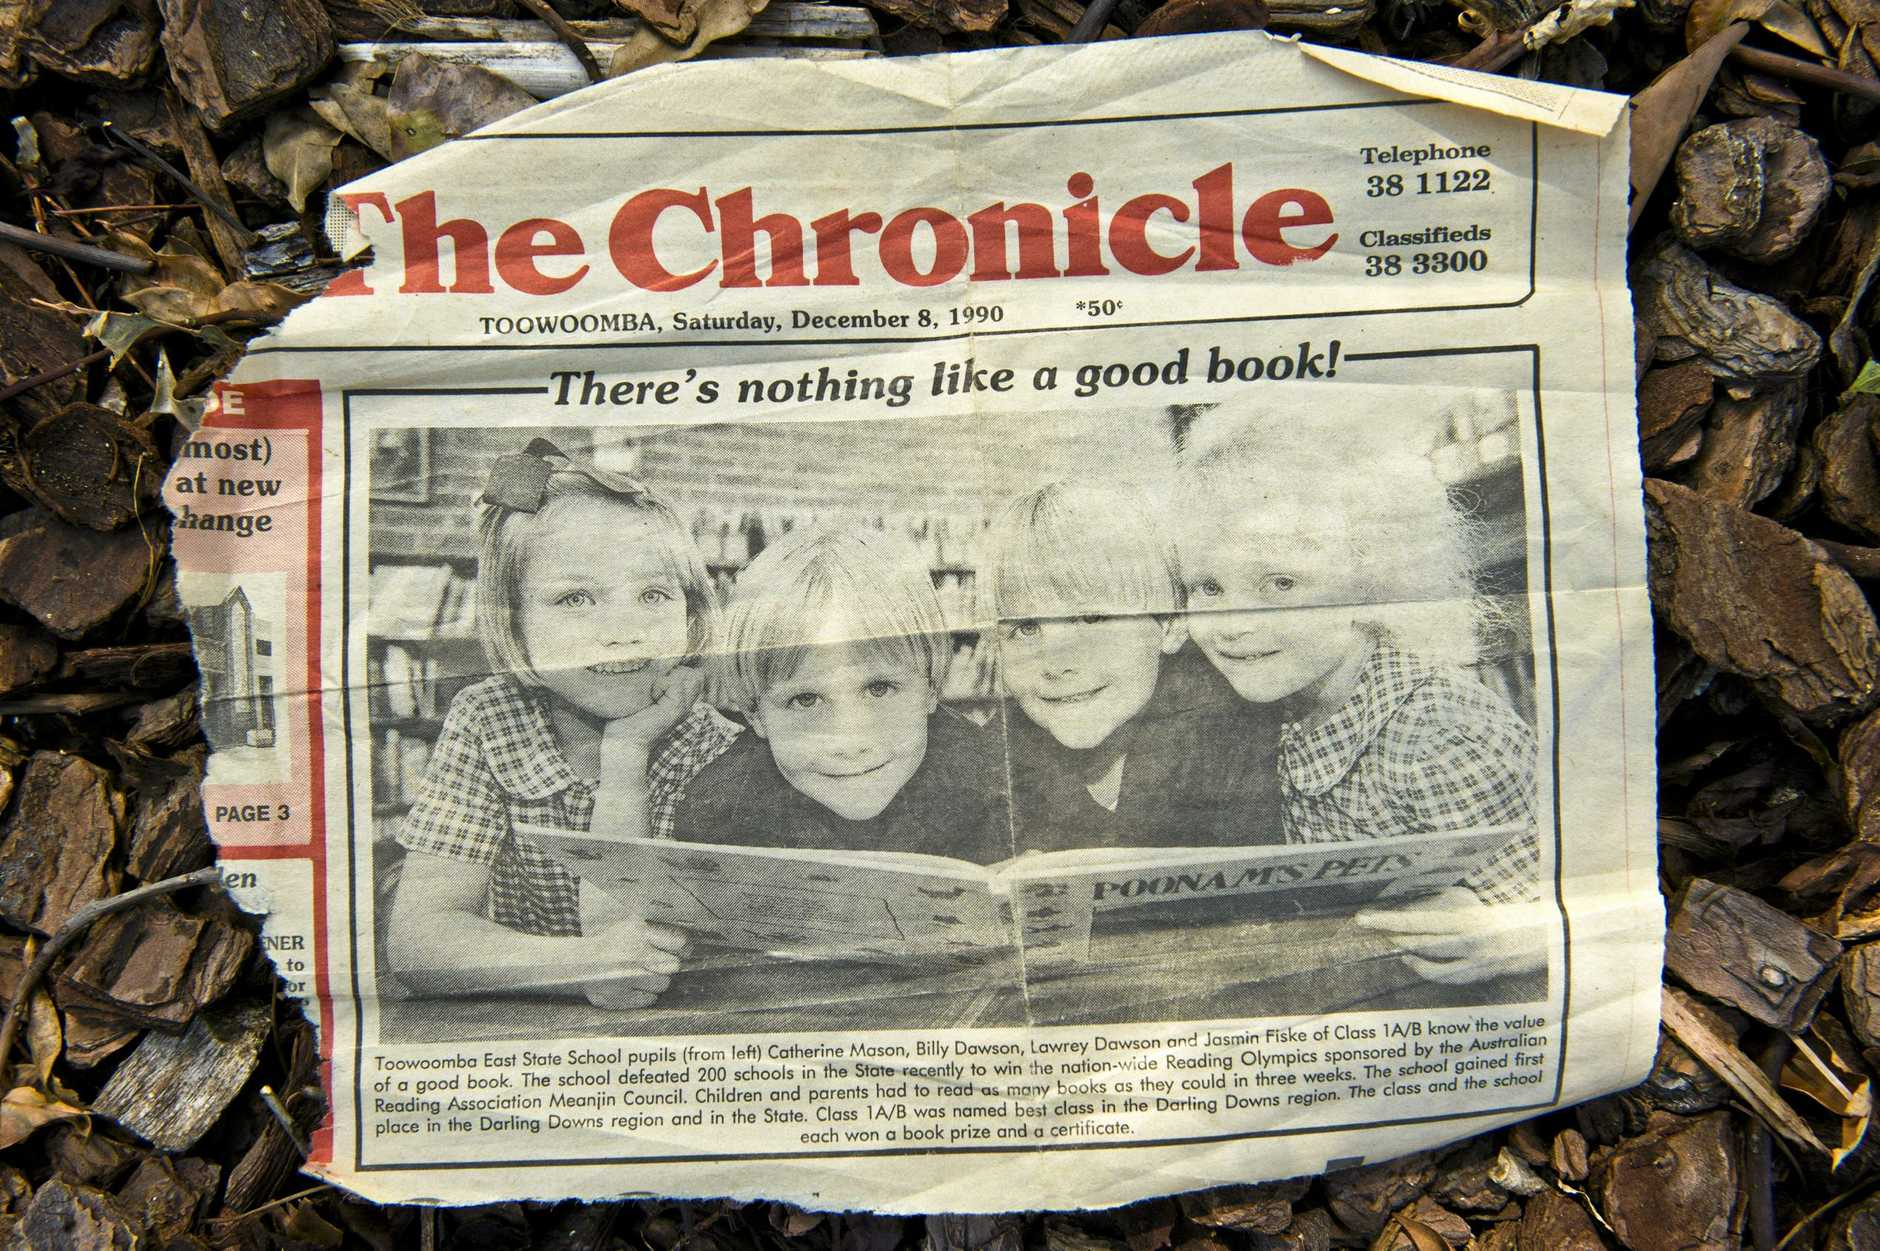 A copy of The Chronicle Ms Humphrey appeared in from 1990. She is pictured on the left.